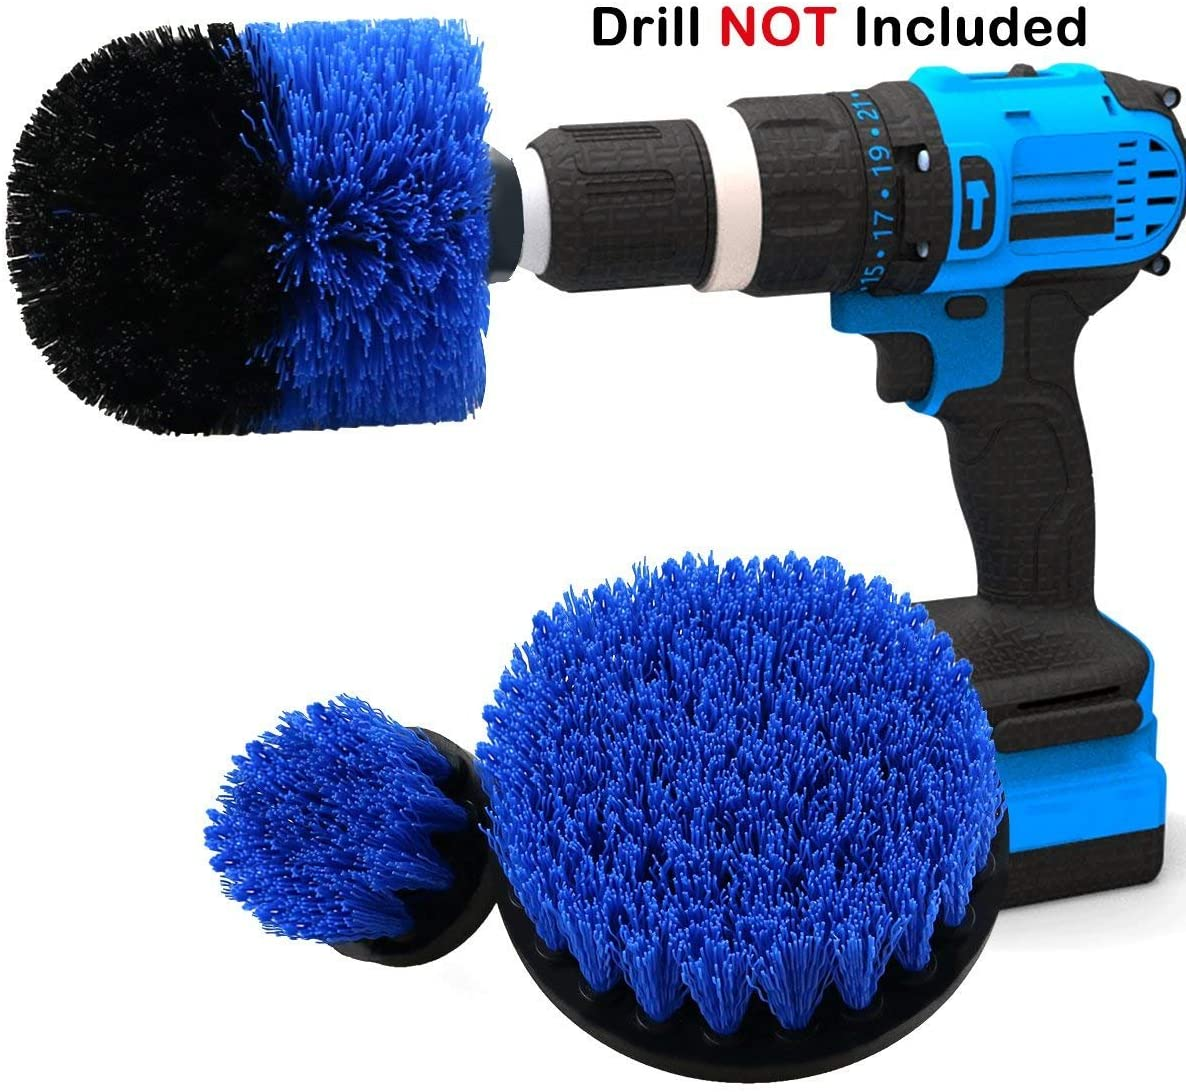 3 Piece Drill Brush Cleaning Tools Power Scrubber Cleaning Kit Attachment Kit for Scrubbing/Cleaning Tile, Bathroom Surfaces Shower Grout, Shower, Bathtub, and all other General Purpose(Blue Set)